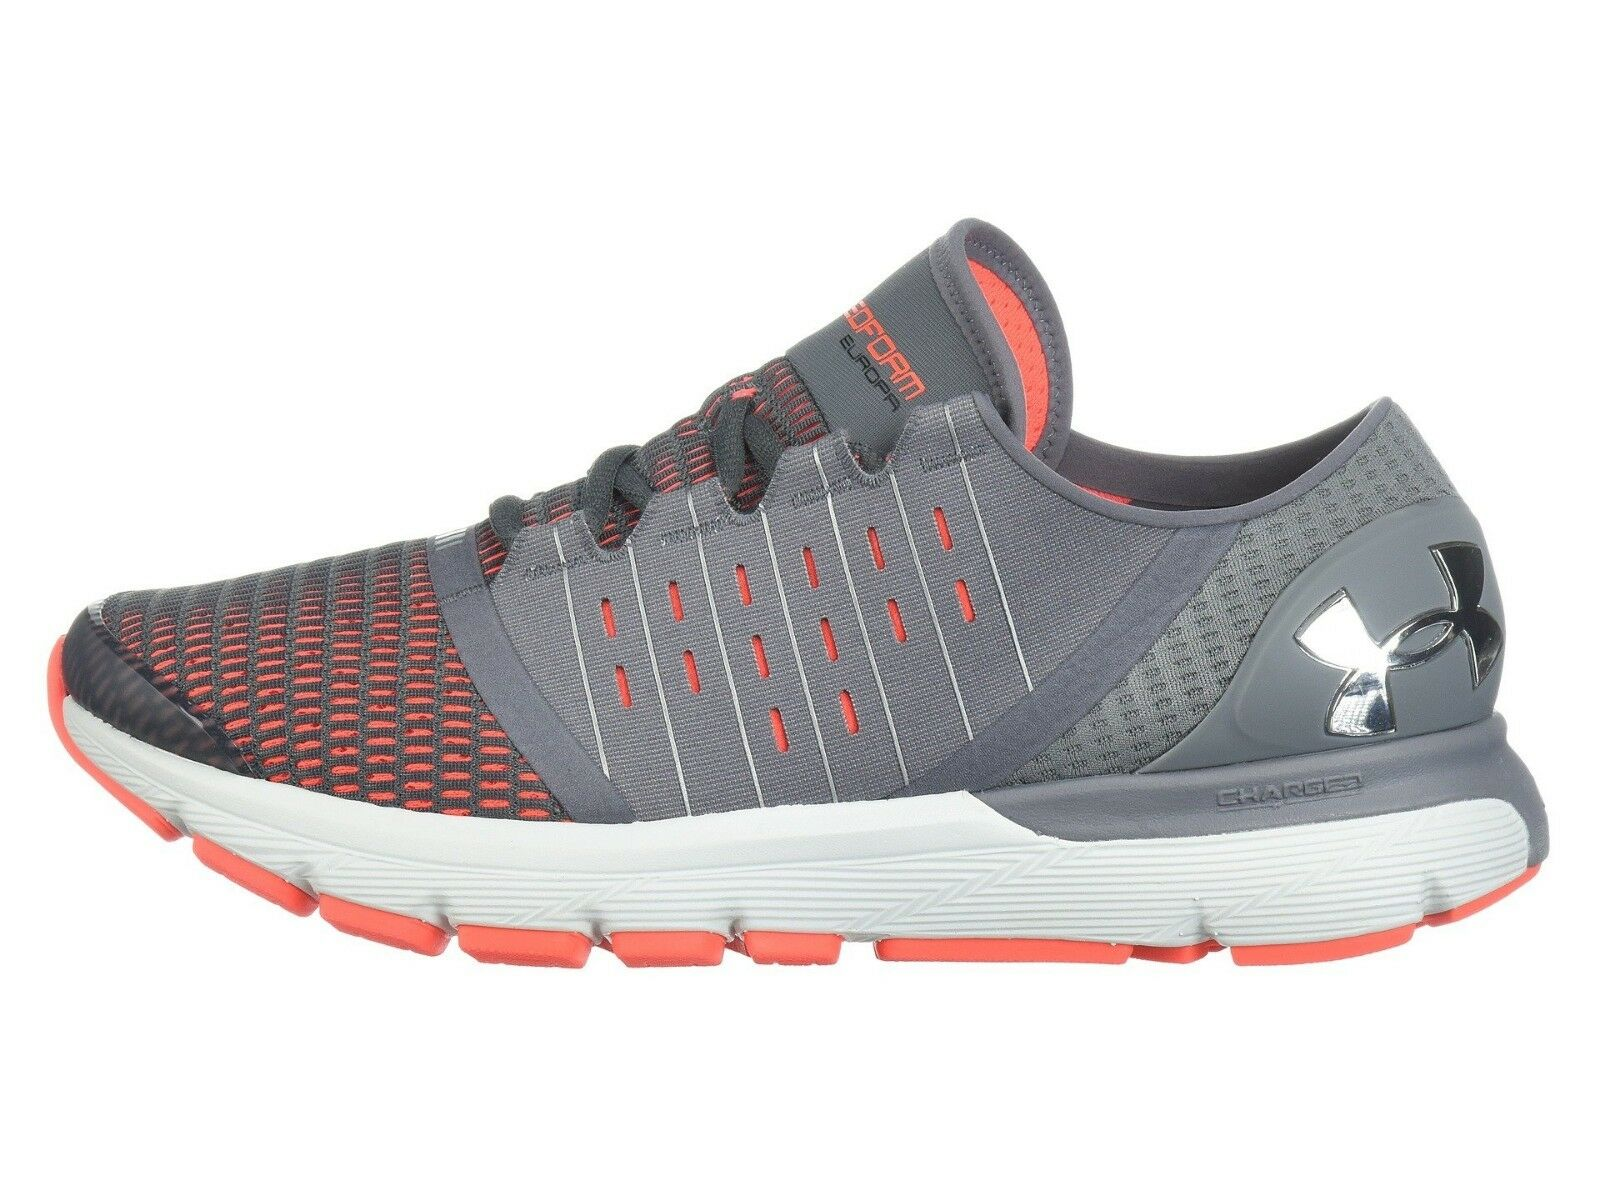 Under Armour hommes Speedform Europa Running Chaussures 1285653-101 Gris Gris Gris Orange 8c6e33